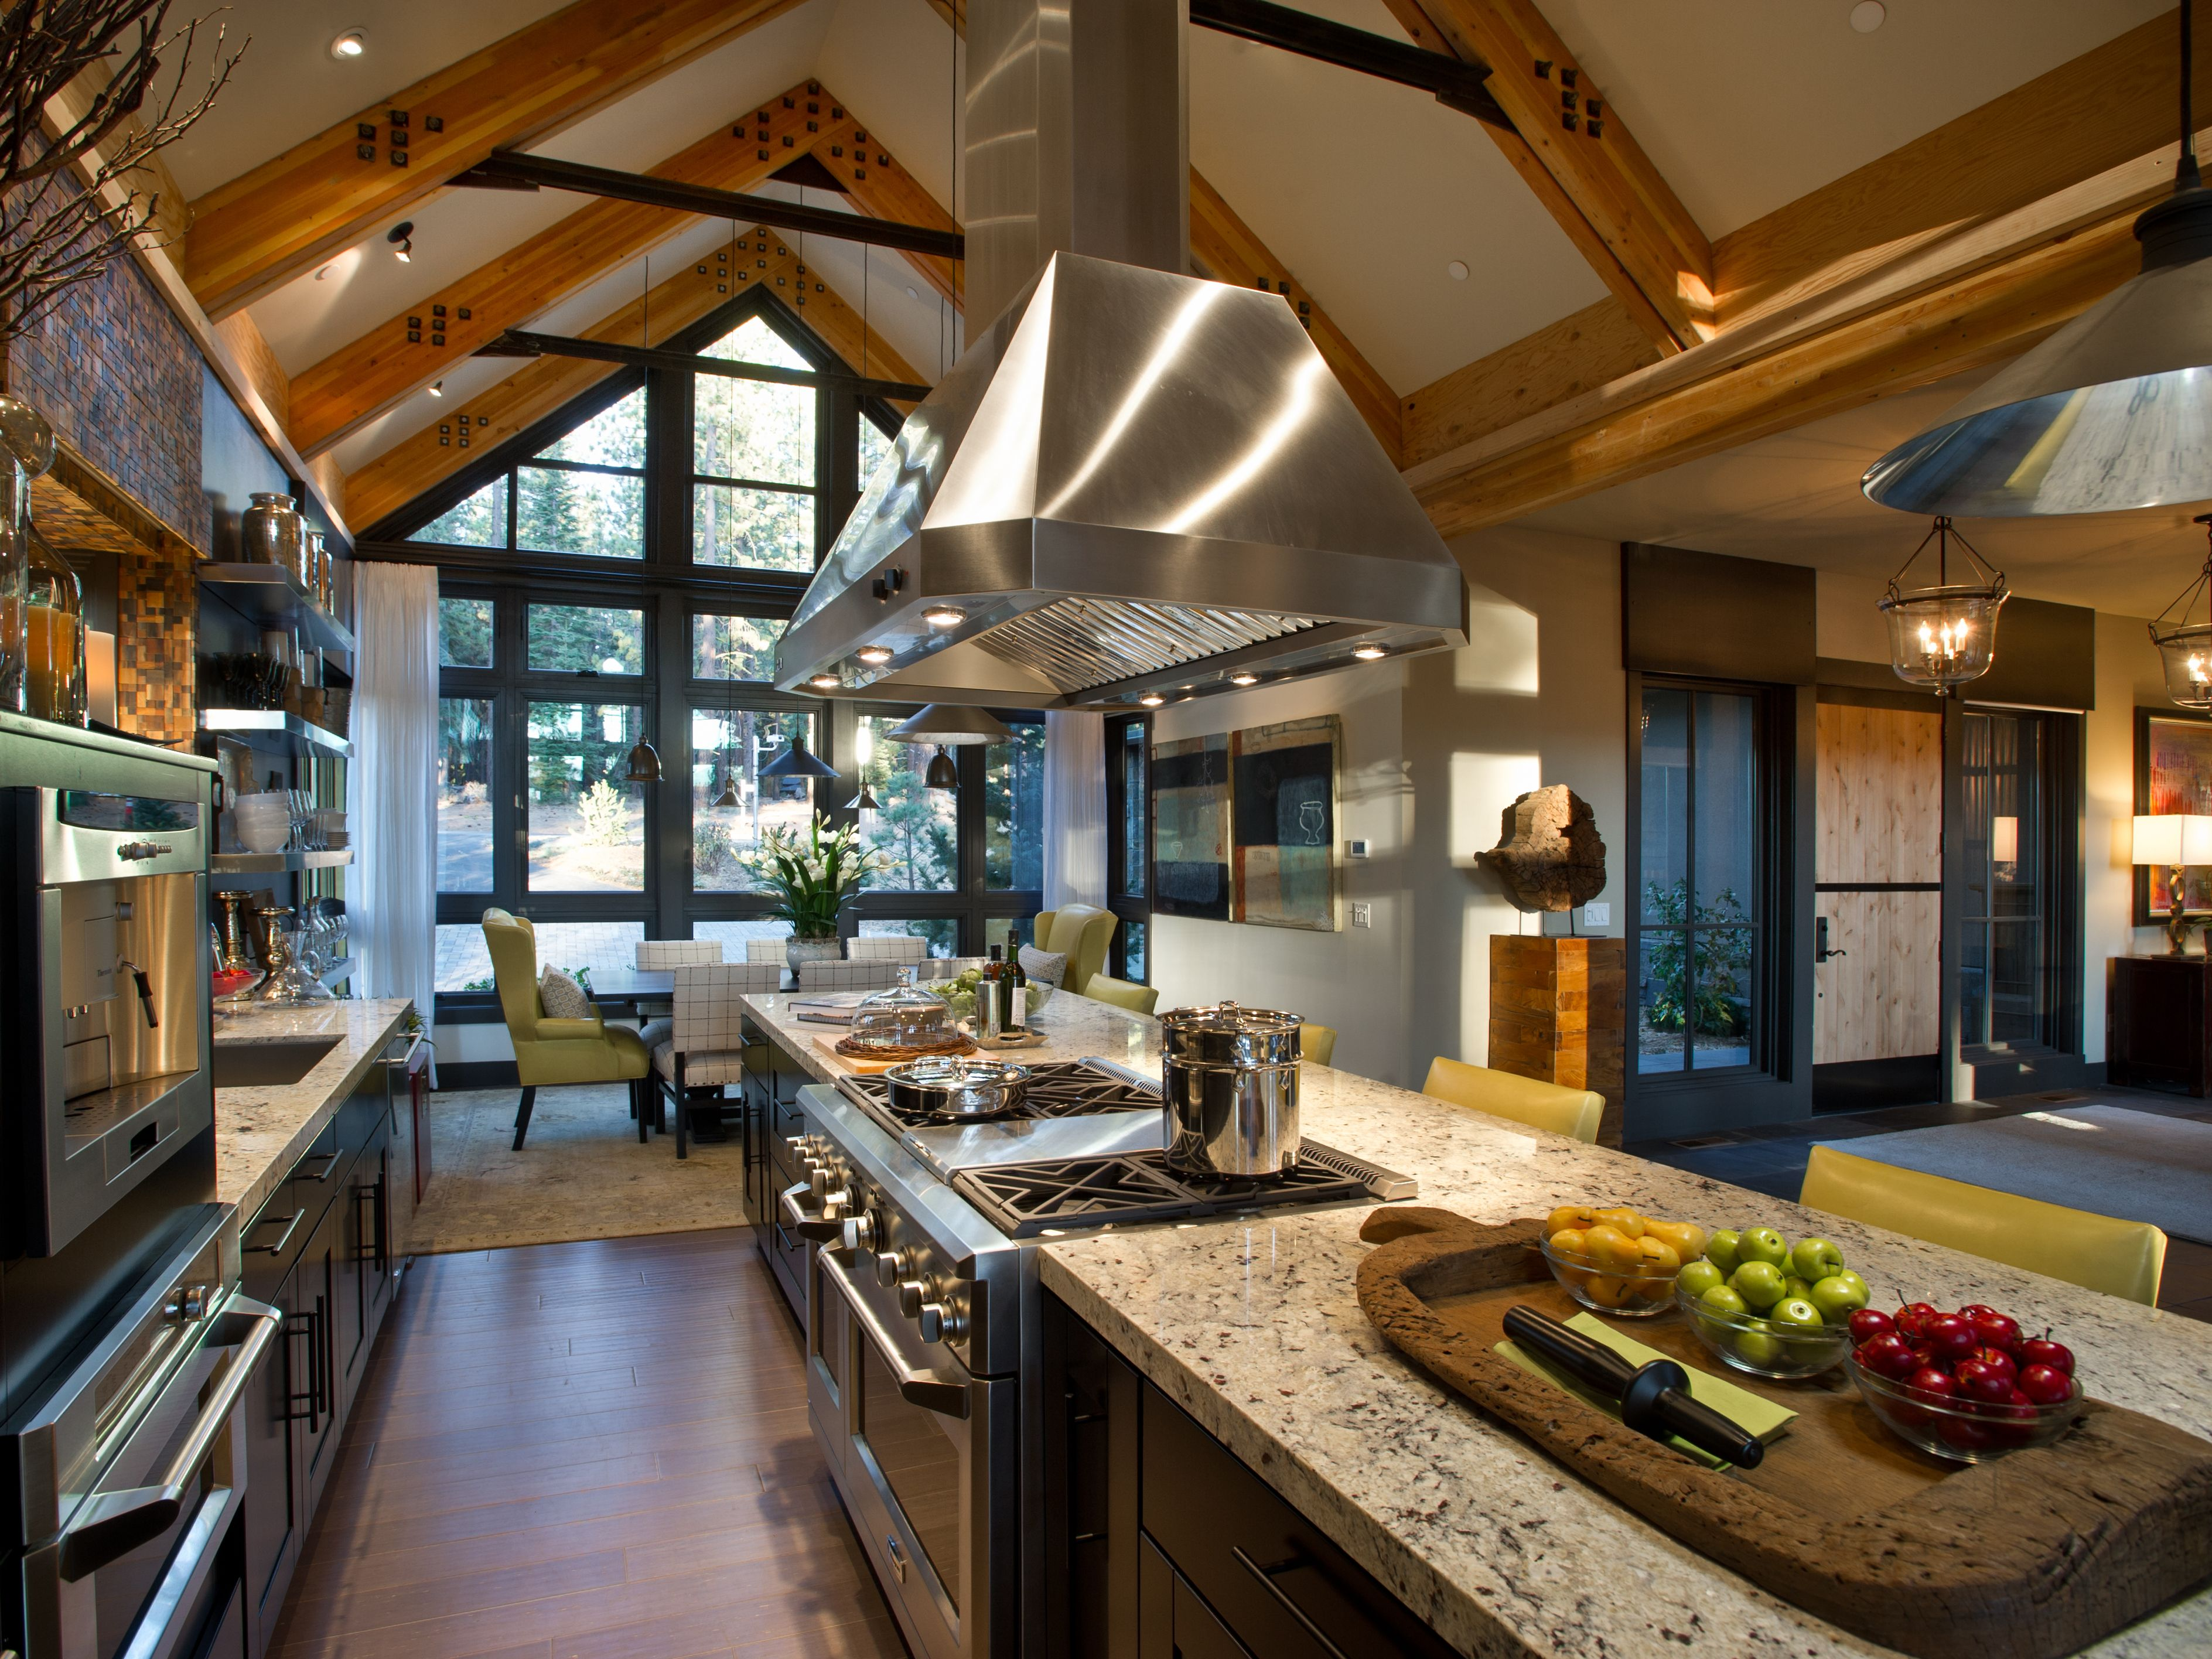 ... Getaway Located In Truckee, Calif., Minutes Away From Lake Tahoe. ©  2013, Scripps Networks, LLC. All Rights Reserved Www.cabinetstogo.com # CabinetsToGou200f